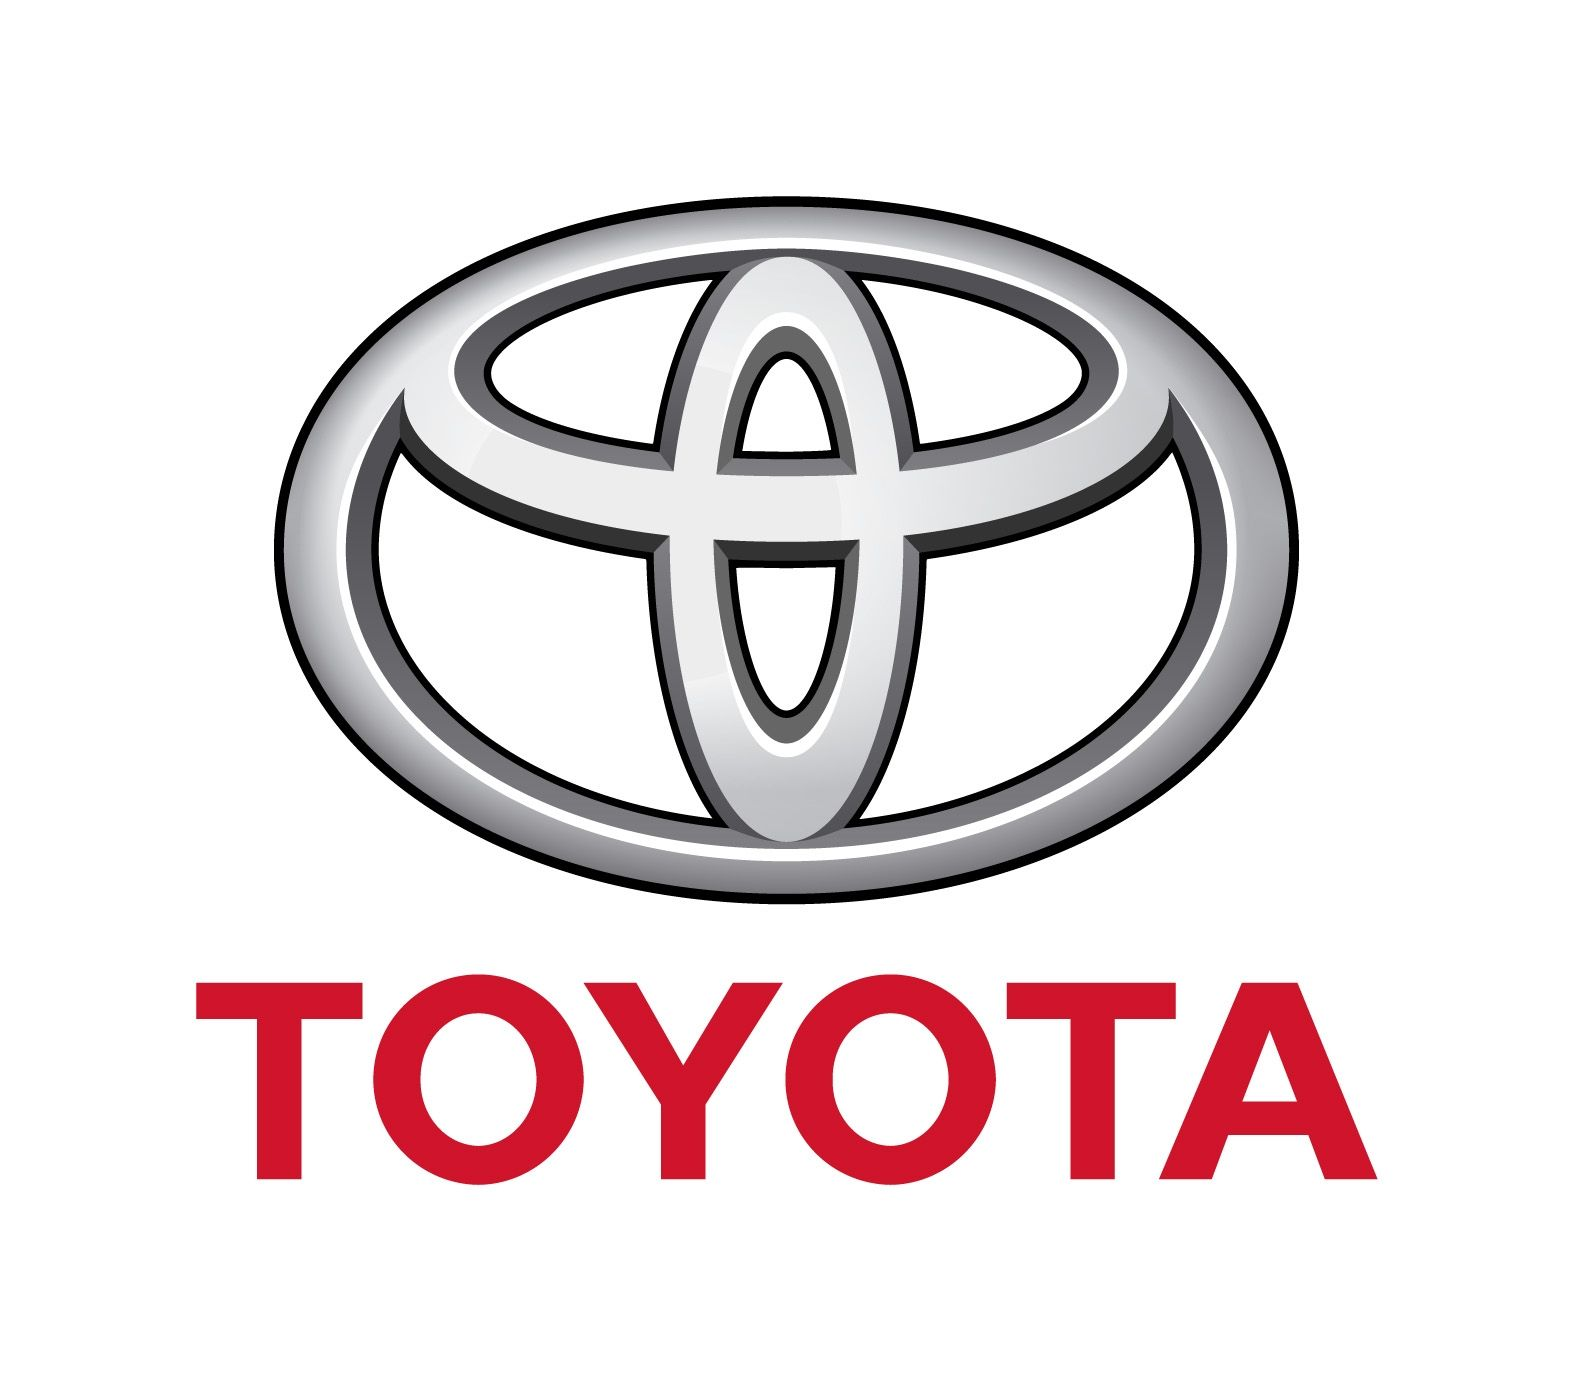 Toyota Logo - Toyota-Logo - Luxembourg School of Business - MBA Program in ...